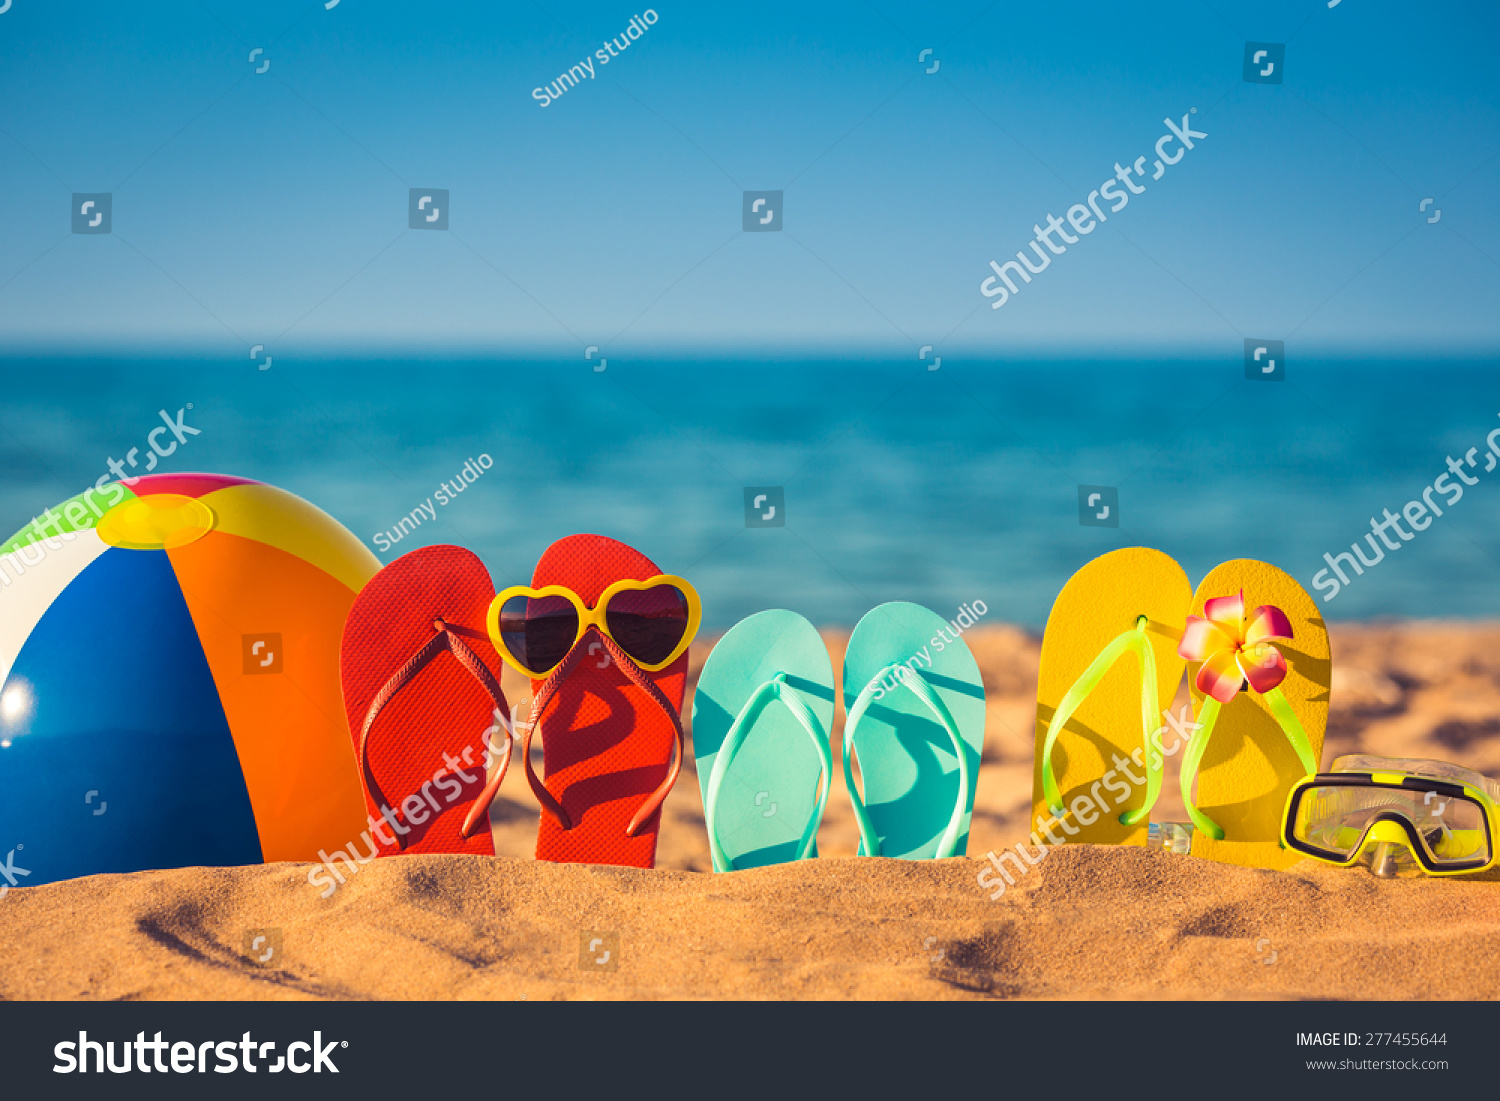 Flip-flops, beach ball and snorkel on the sand. Summer vacation concept #277455644 - 123PhotoFree.com